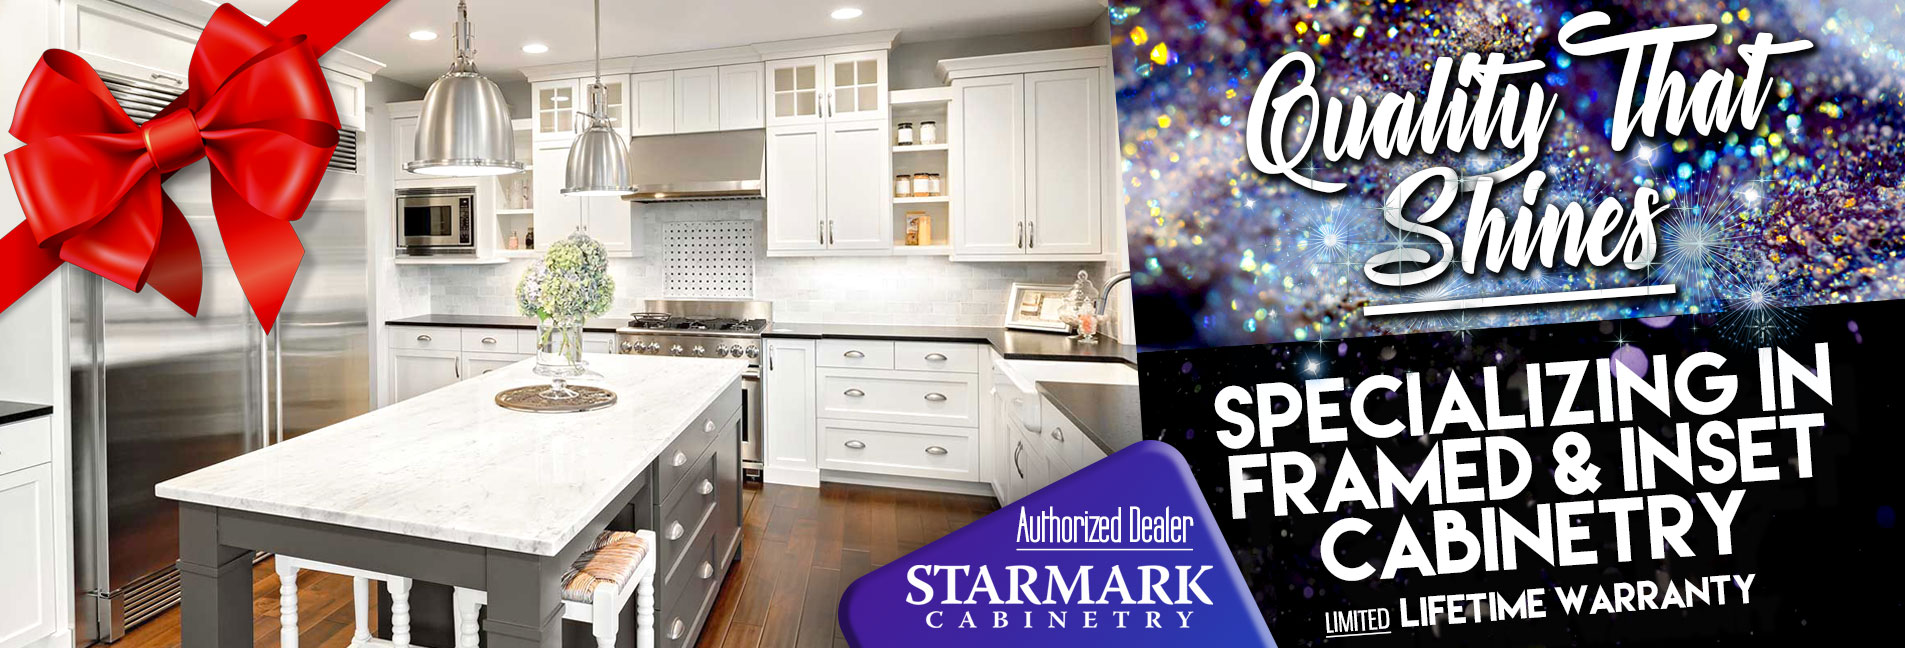 Starmark Inset Cabinetry